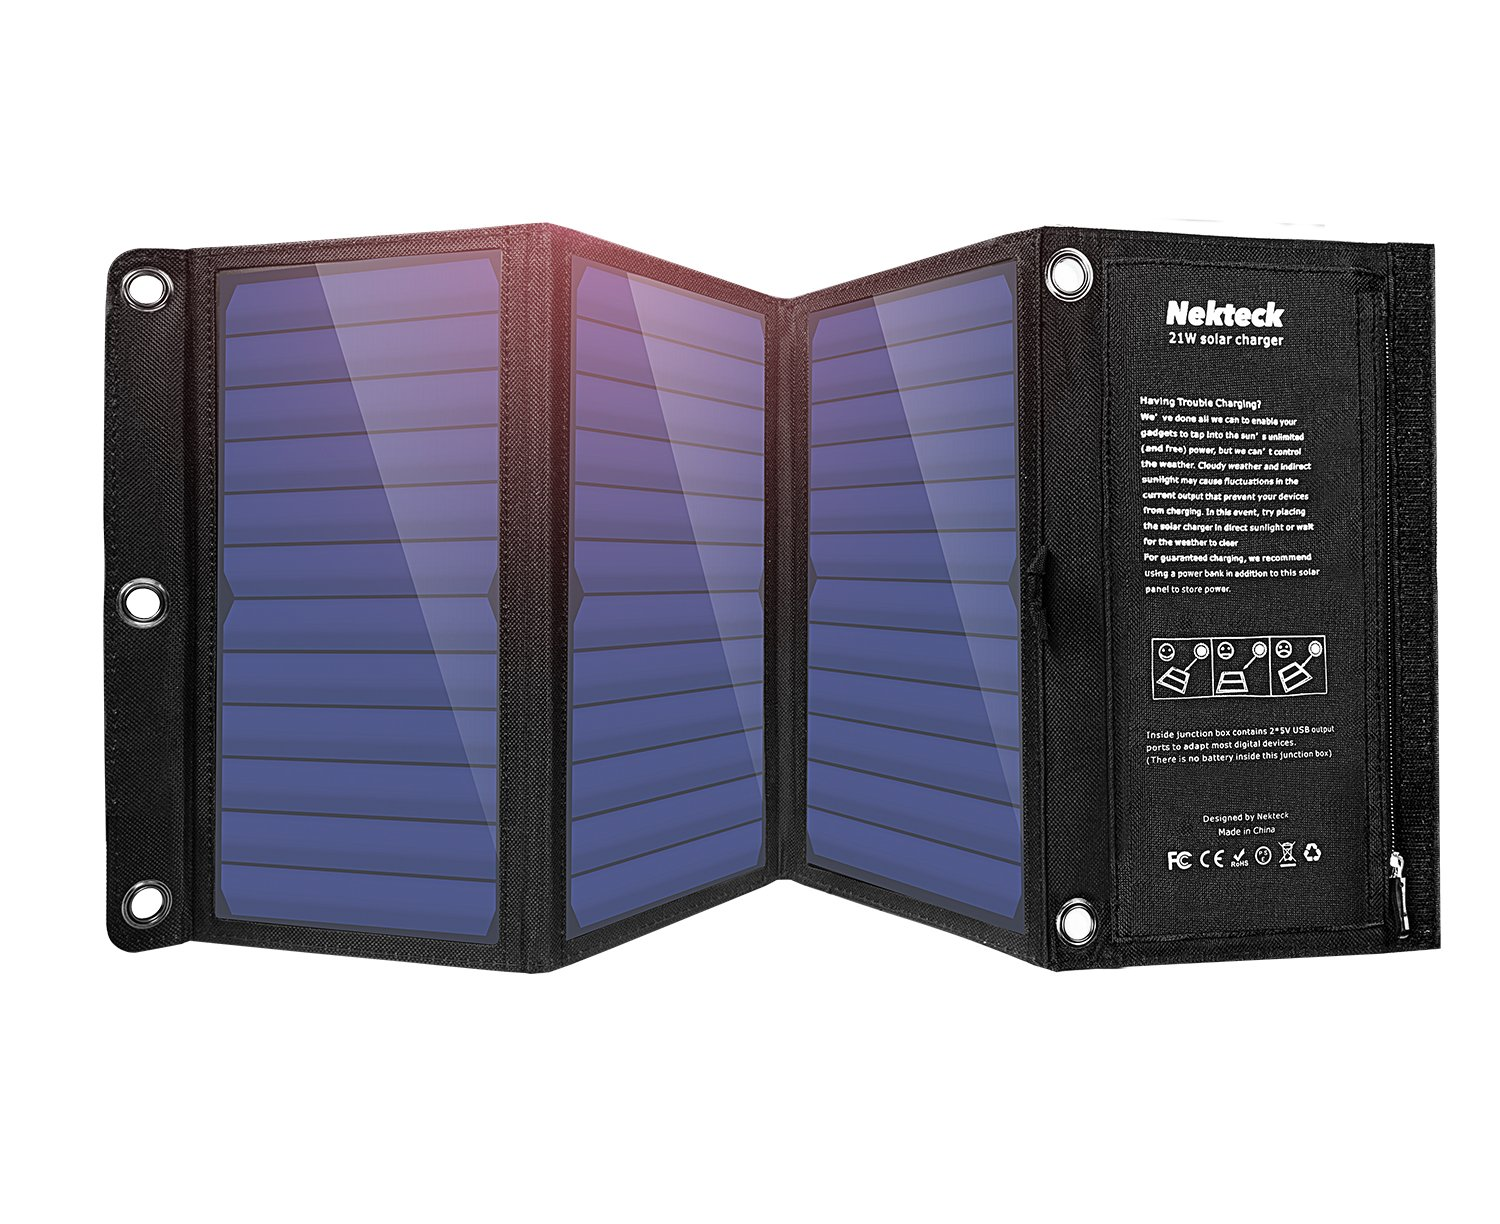 Nekteck 21W Solar Charger, 2 USB Port Waterproof Portable Camping Charger with High Efficiency Solar Panel Cell Compatible for iPhone X/8 Plus/8, iPad, and Any USB Devices by Nekteck